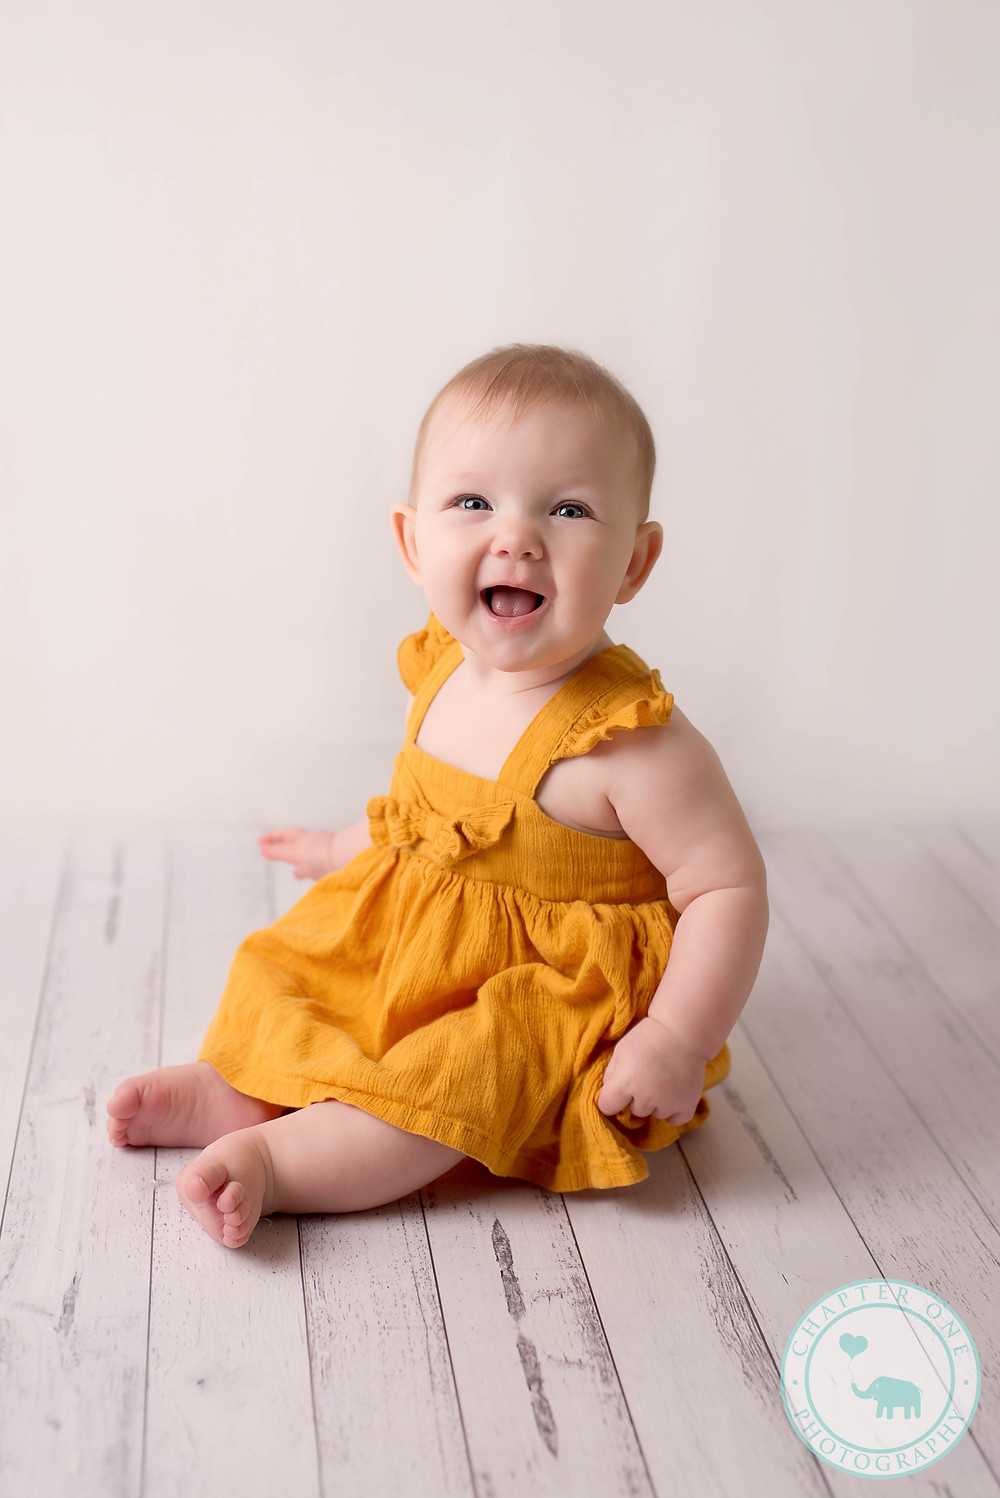 6 month baby girl laughing